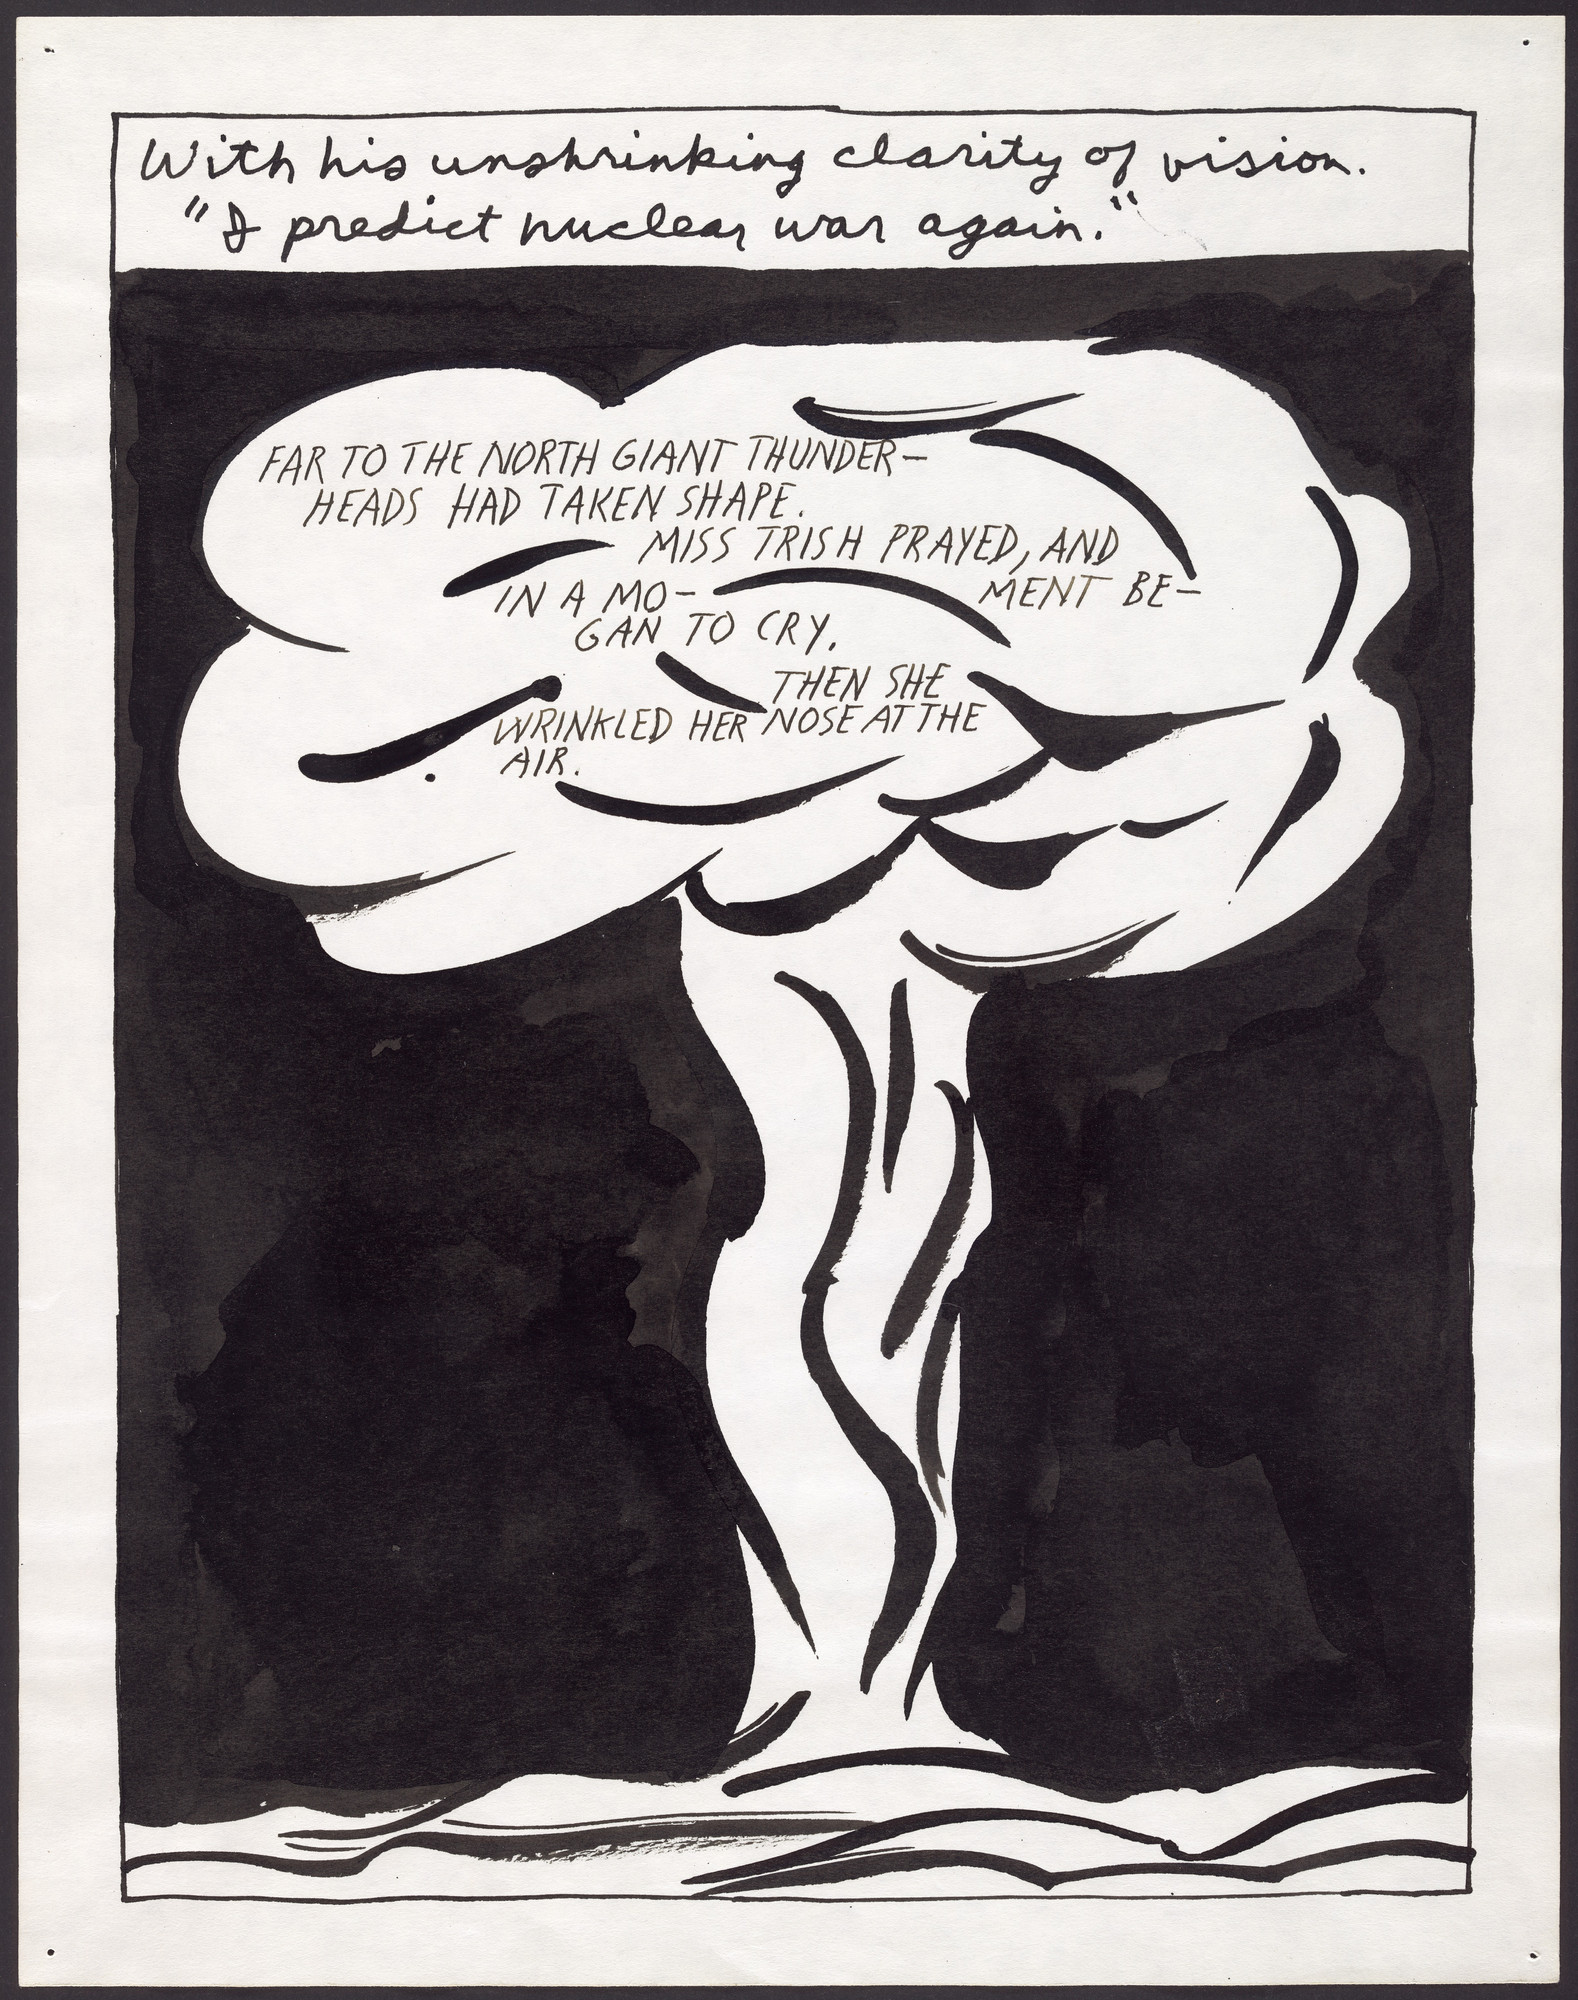 Raymond Pettibon. No Title (With his unshrinking...). 1987